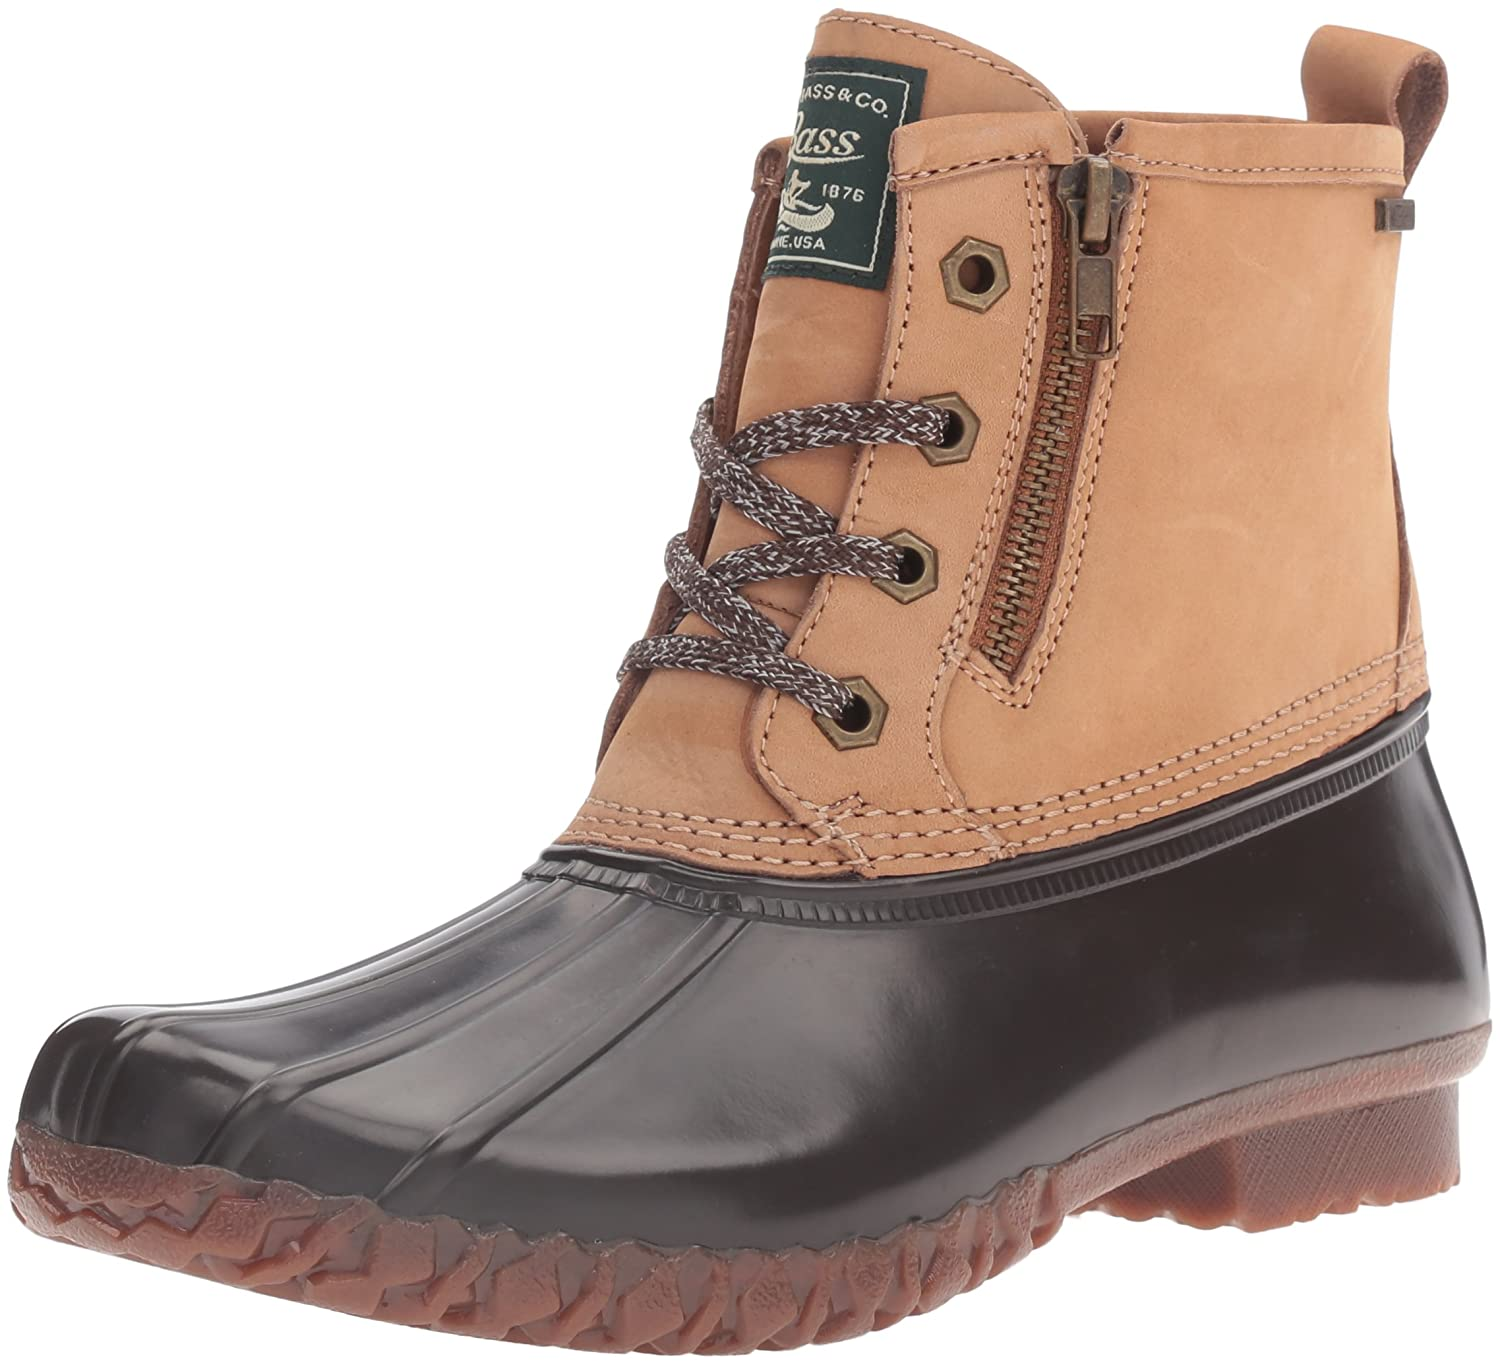 G.H. Bass & Co. Women's Danielle Rain Boot B01D0RR9GM 6 B(M) US|Tan/Chocolate